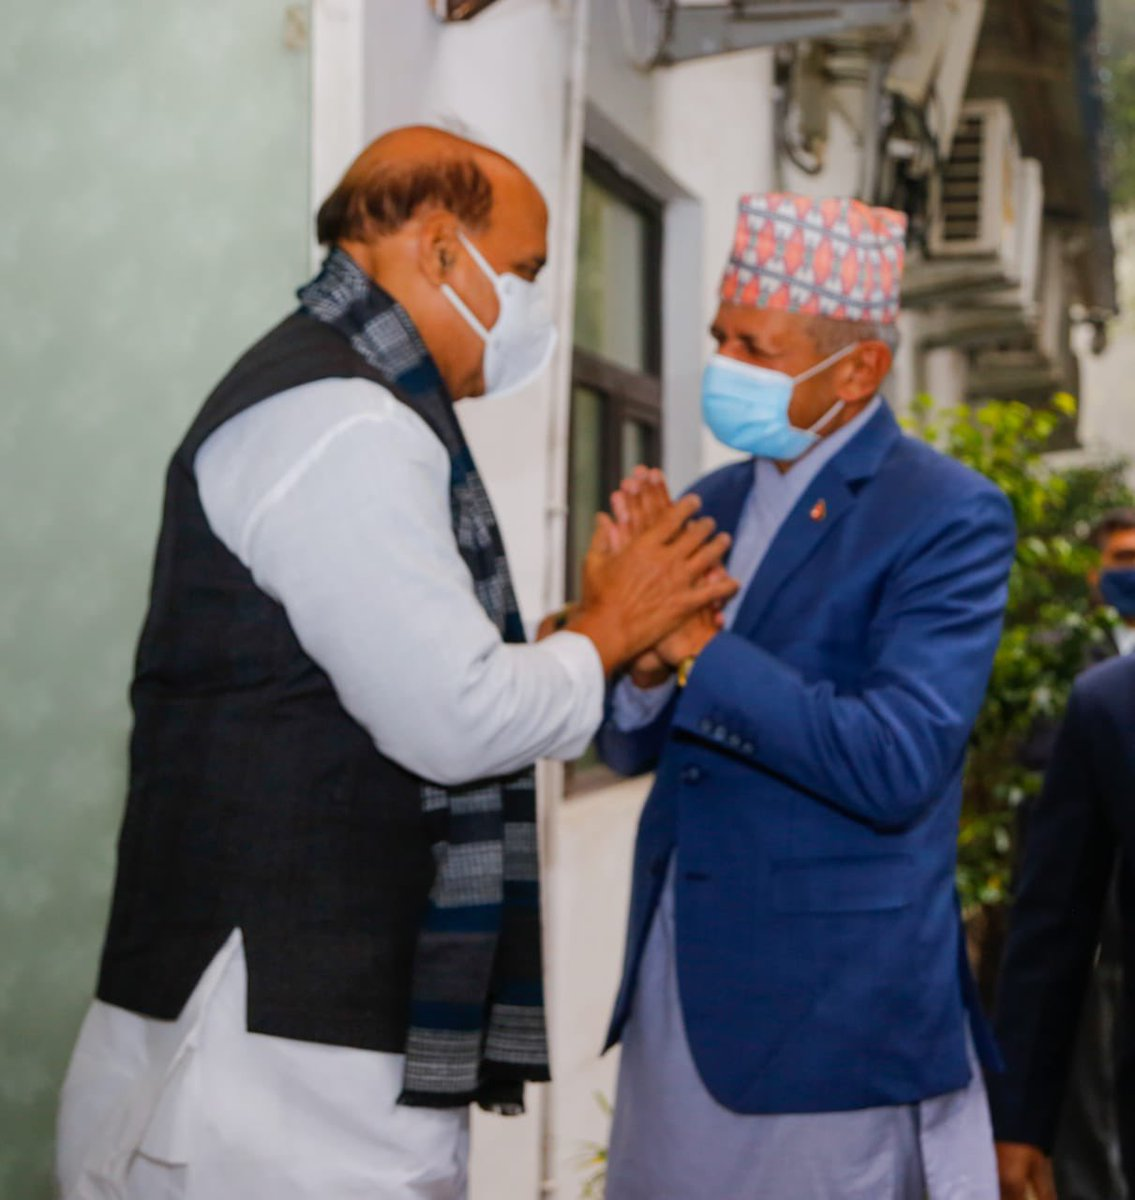 Had a wonderful meeting with the Foreign Minister of Nepal, Shri @PradeepgyawaliK today. India's relations with Nepal are not limited to governments in both the countries but it is driven by the people of the both the nations. India-Nepal relations offer limitless potential.